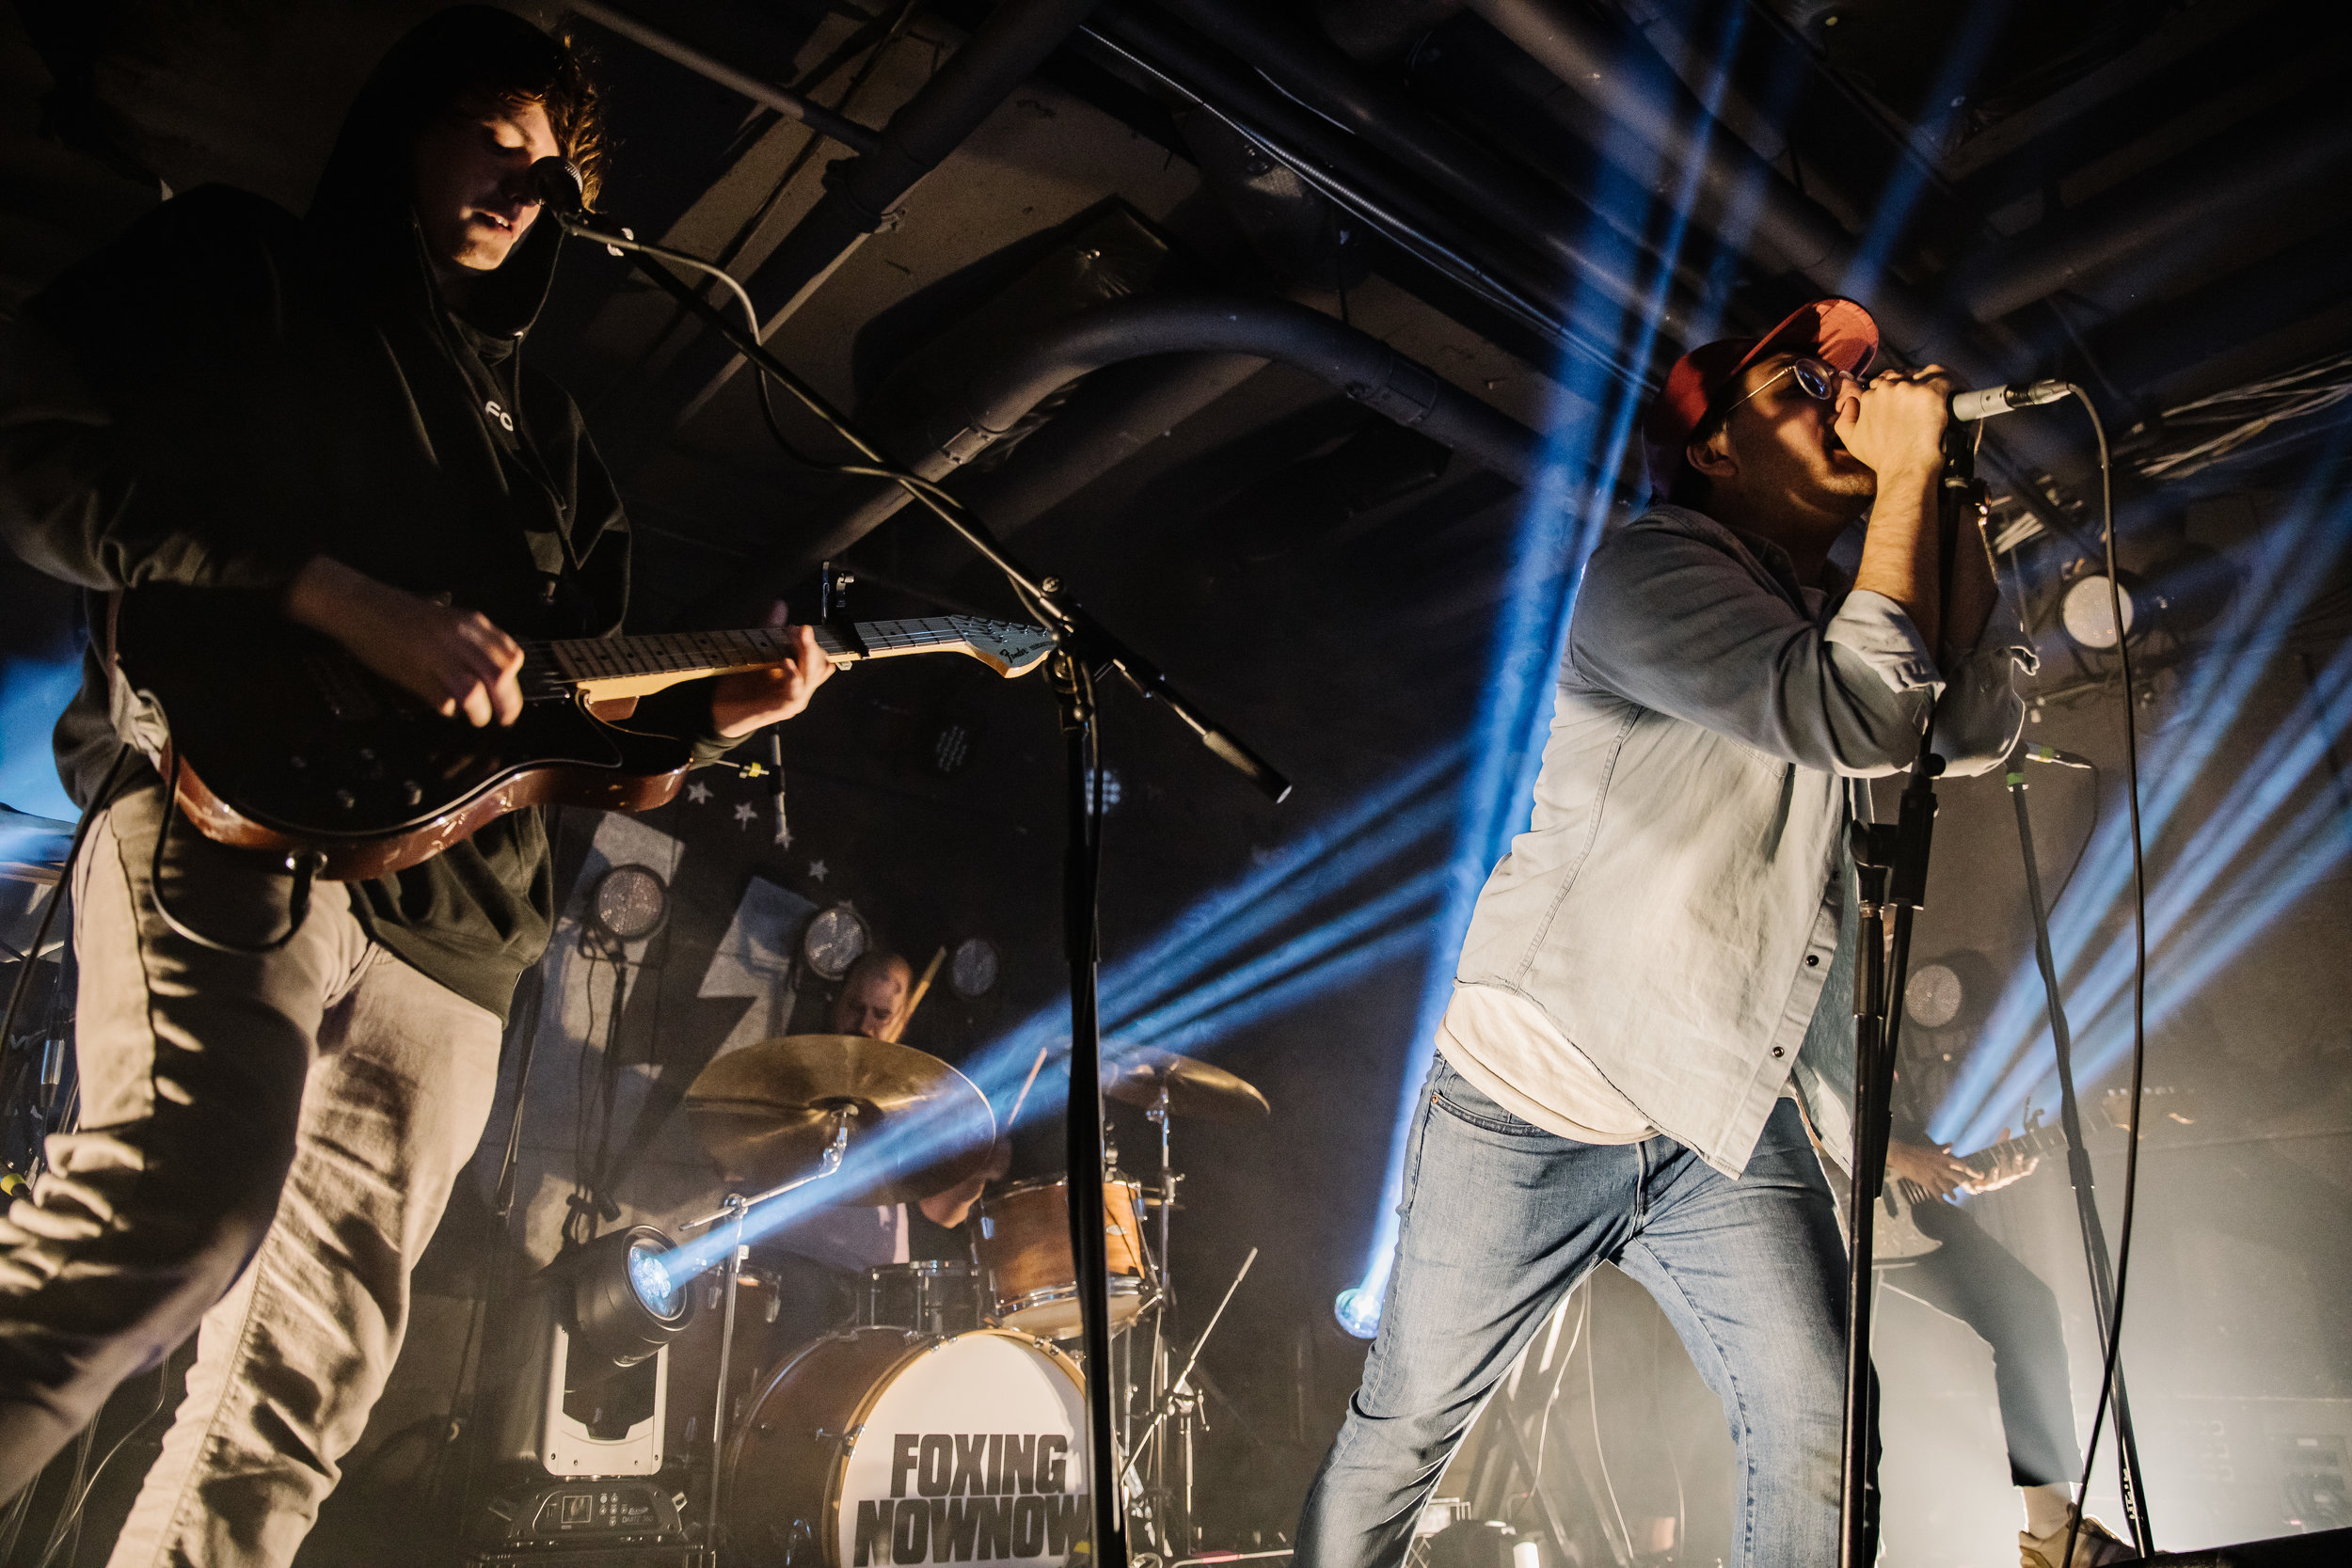 Foxing at U Street Music Hall (Photo by Anna Moneymaker)